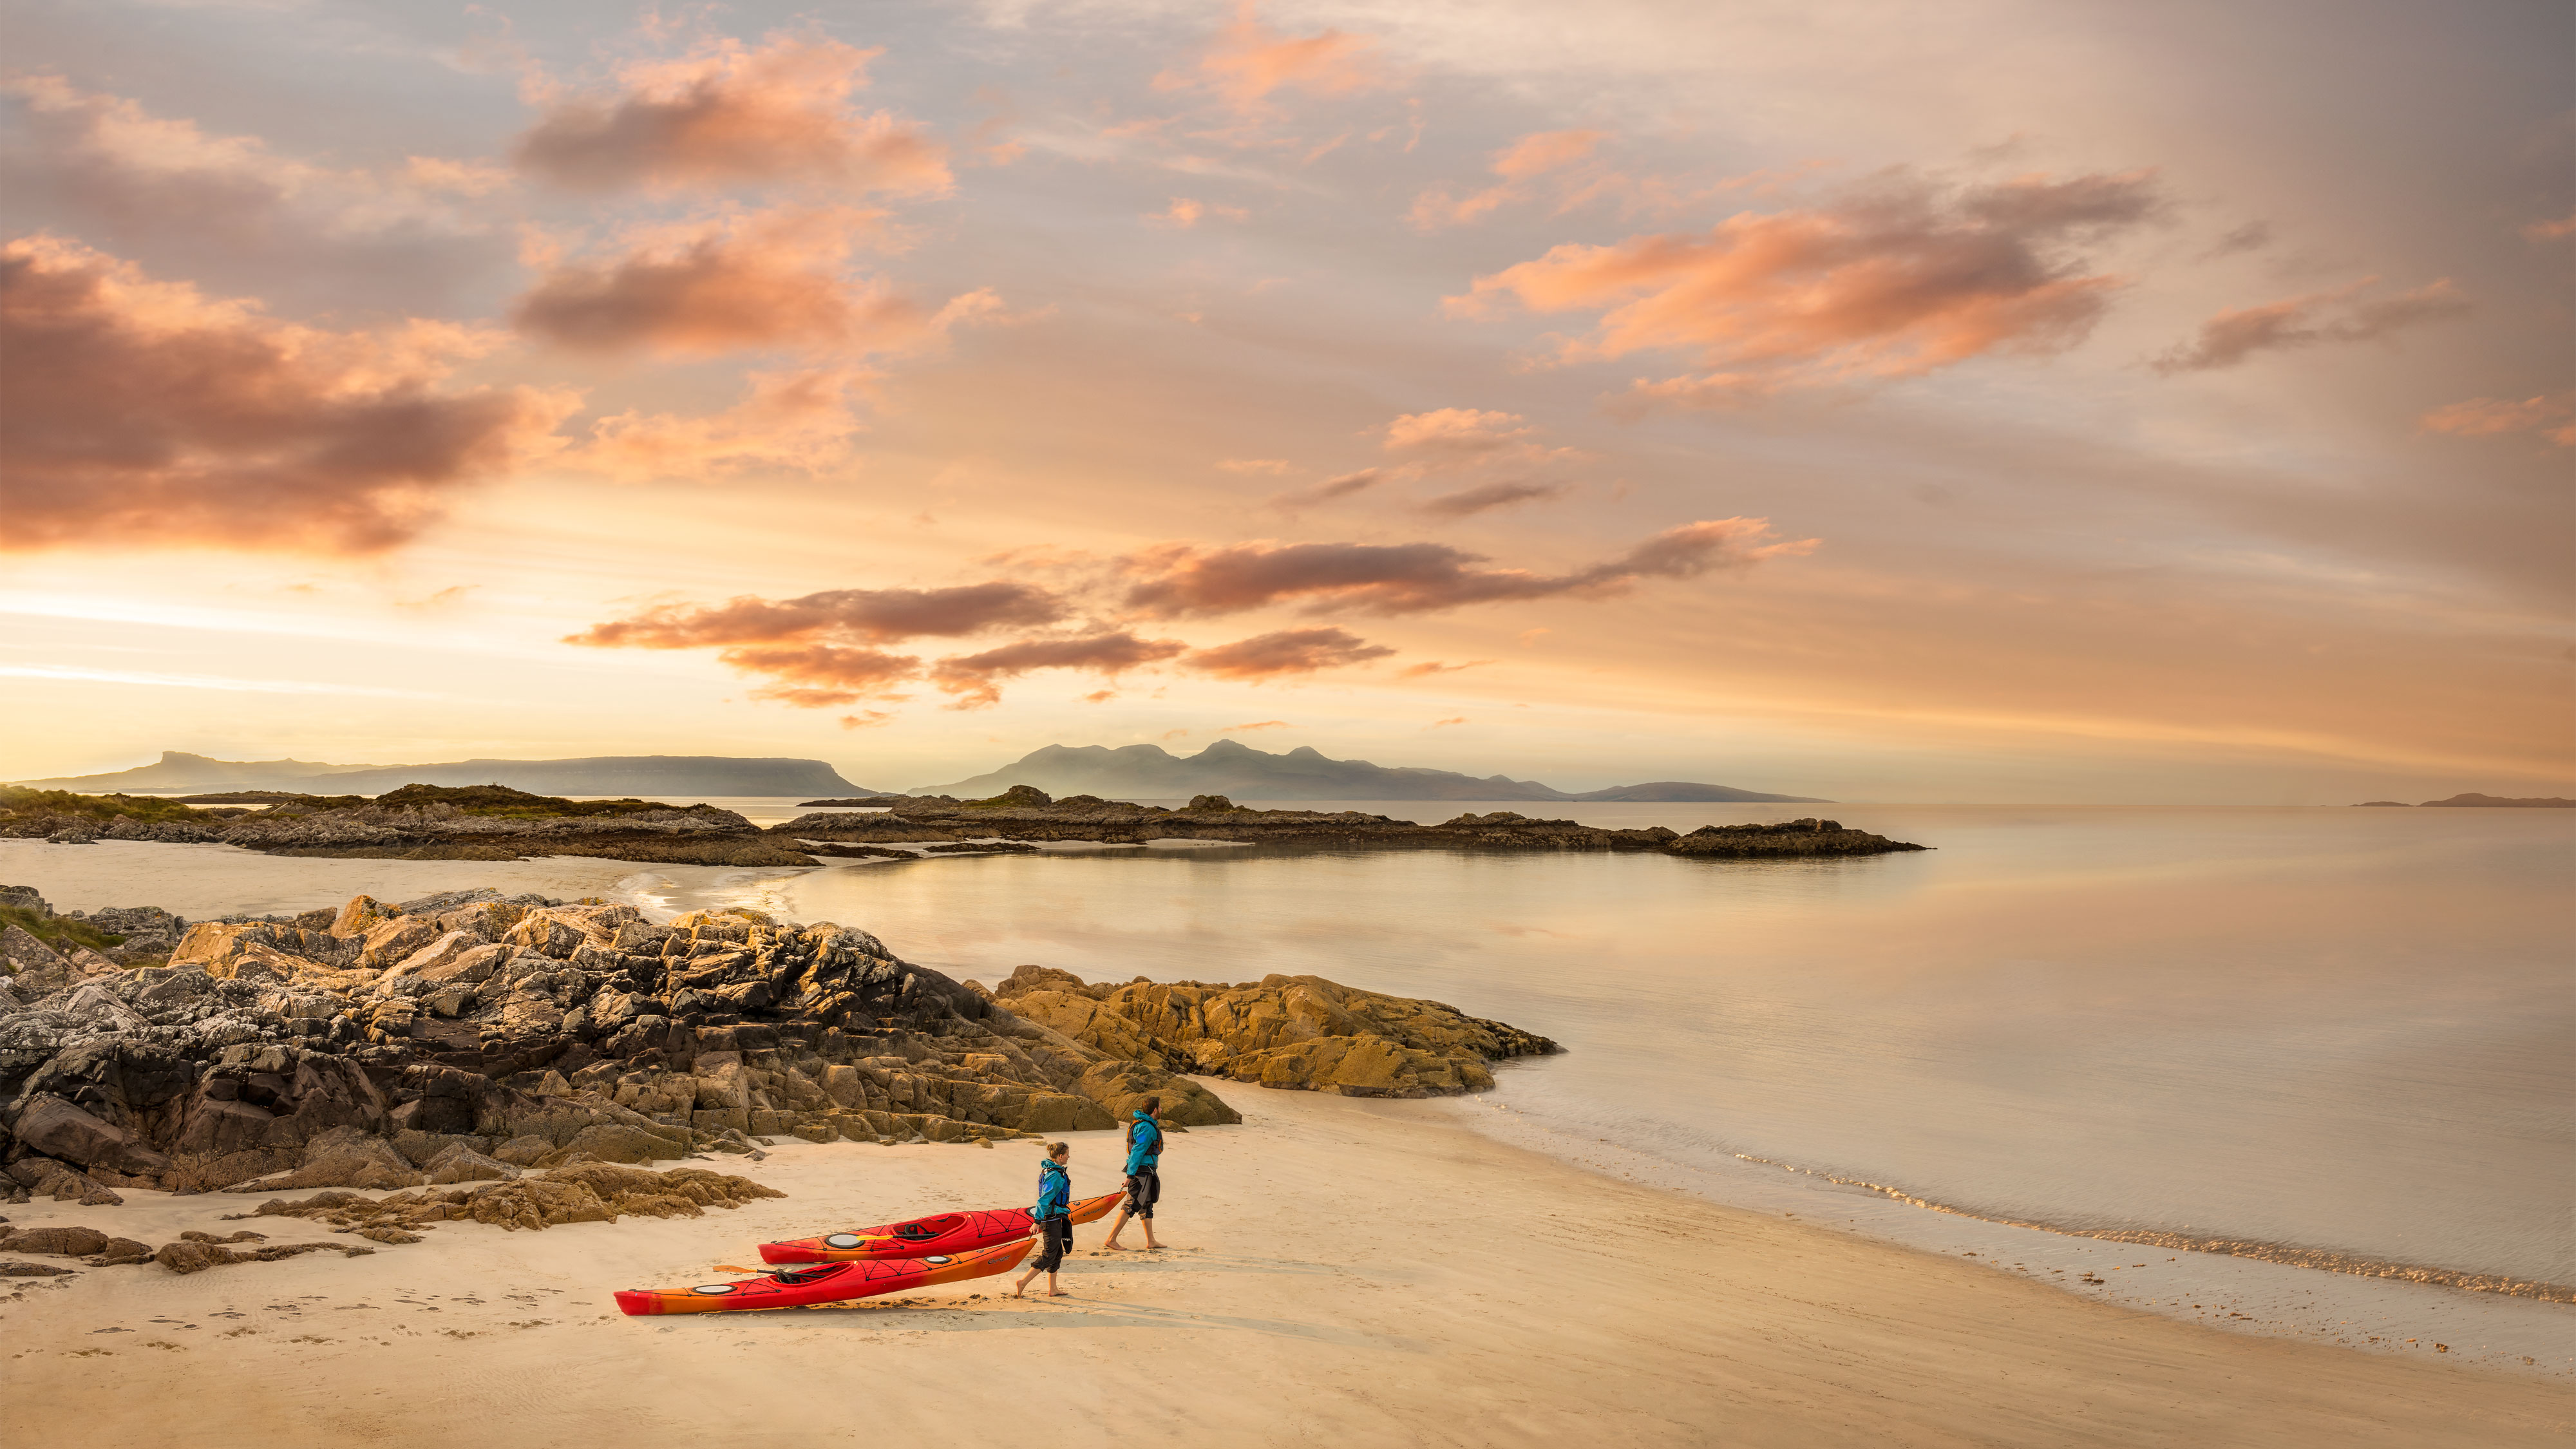 Couple pulling red canoes across sandy beach in Scotland at sunset